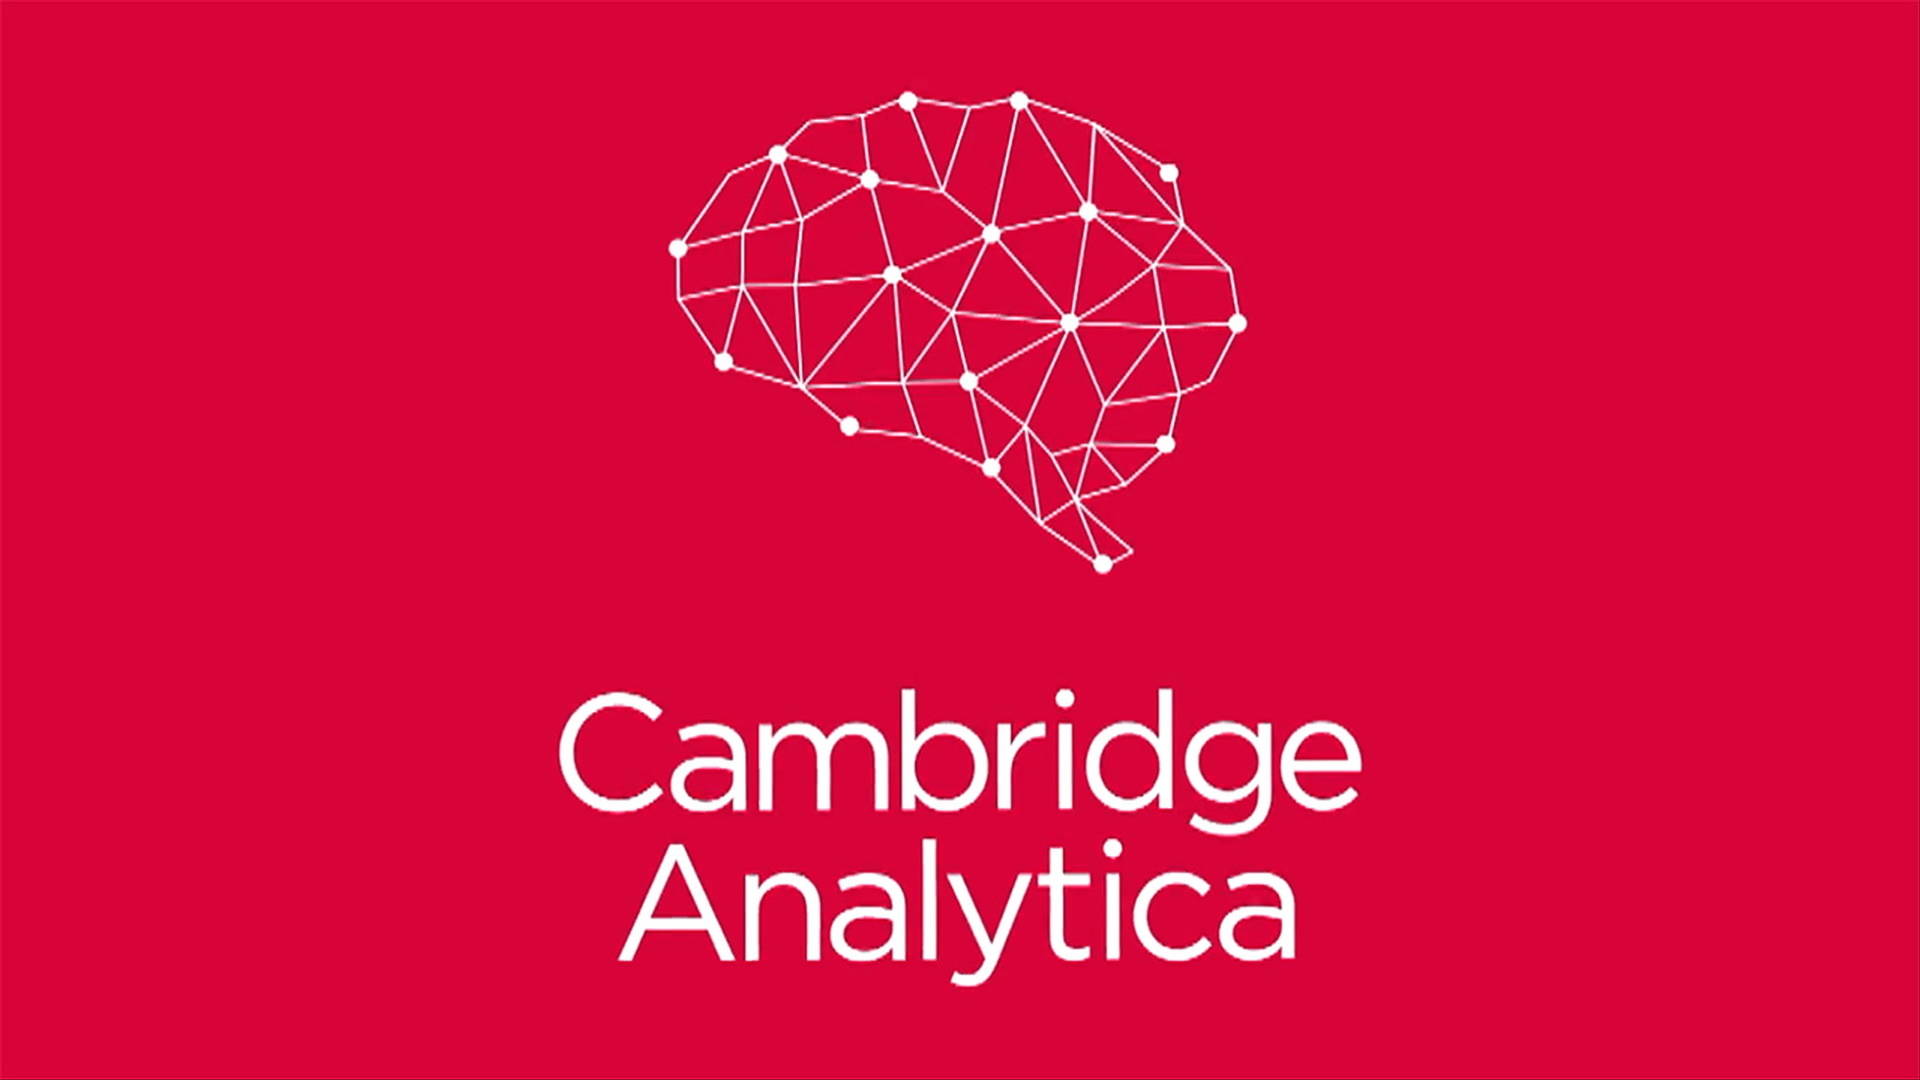 Everything about Facebook v Cambridge Analytica in 2 minutes